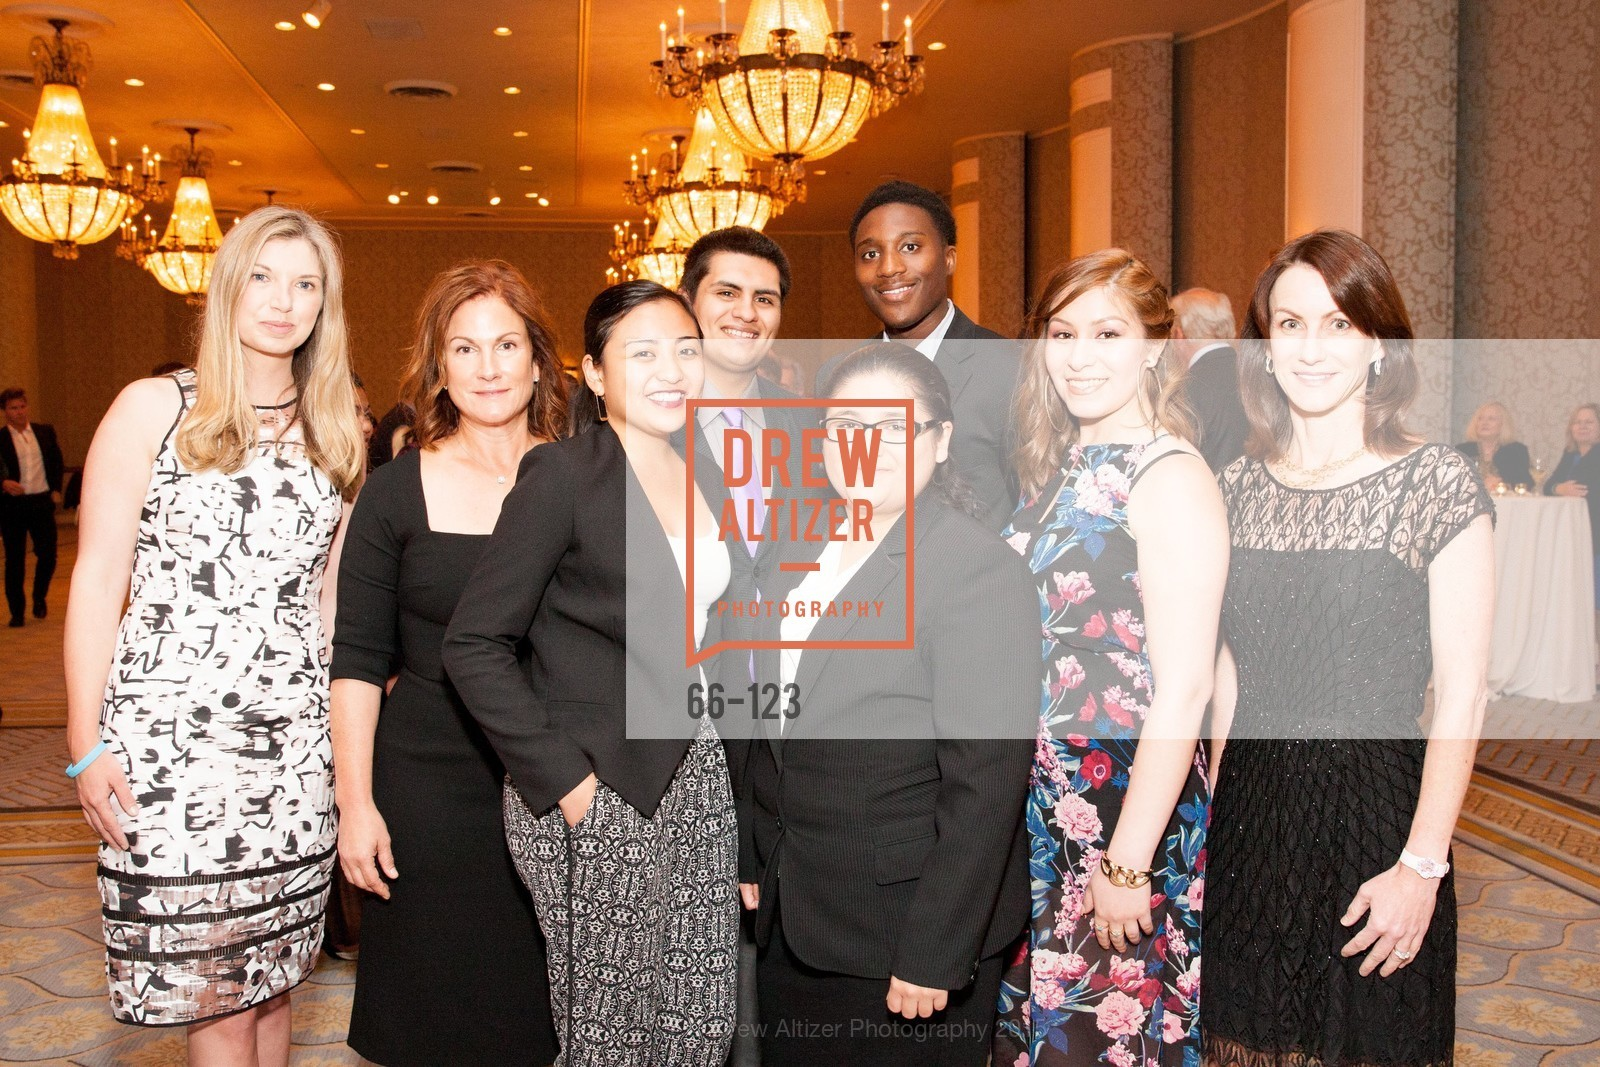 Cameron Phleger, Lorin Costolo, Aeris Velasco, Joe Armijo, Khari Brown, Carmen Sosa, Yuri Huerta, Stephanie Mellin, 2015 Boys and Girls Club Annual Gala, The Fairmont San Francisco. 950 Mason St, May 20th, 2015,Drew Altizer, Drew Altizer Photography, full-service agency, private events, San Francisco photographer, photographer california